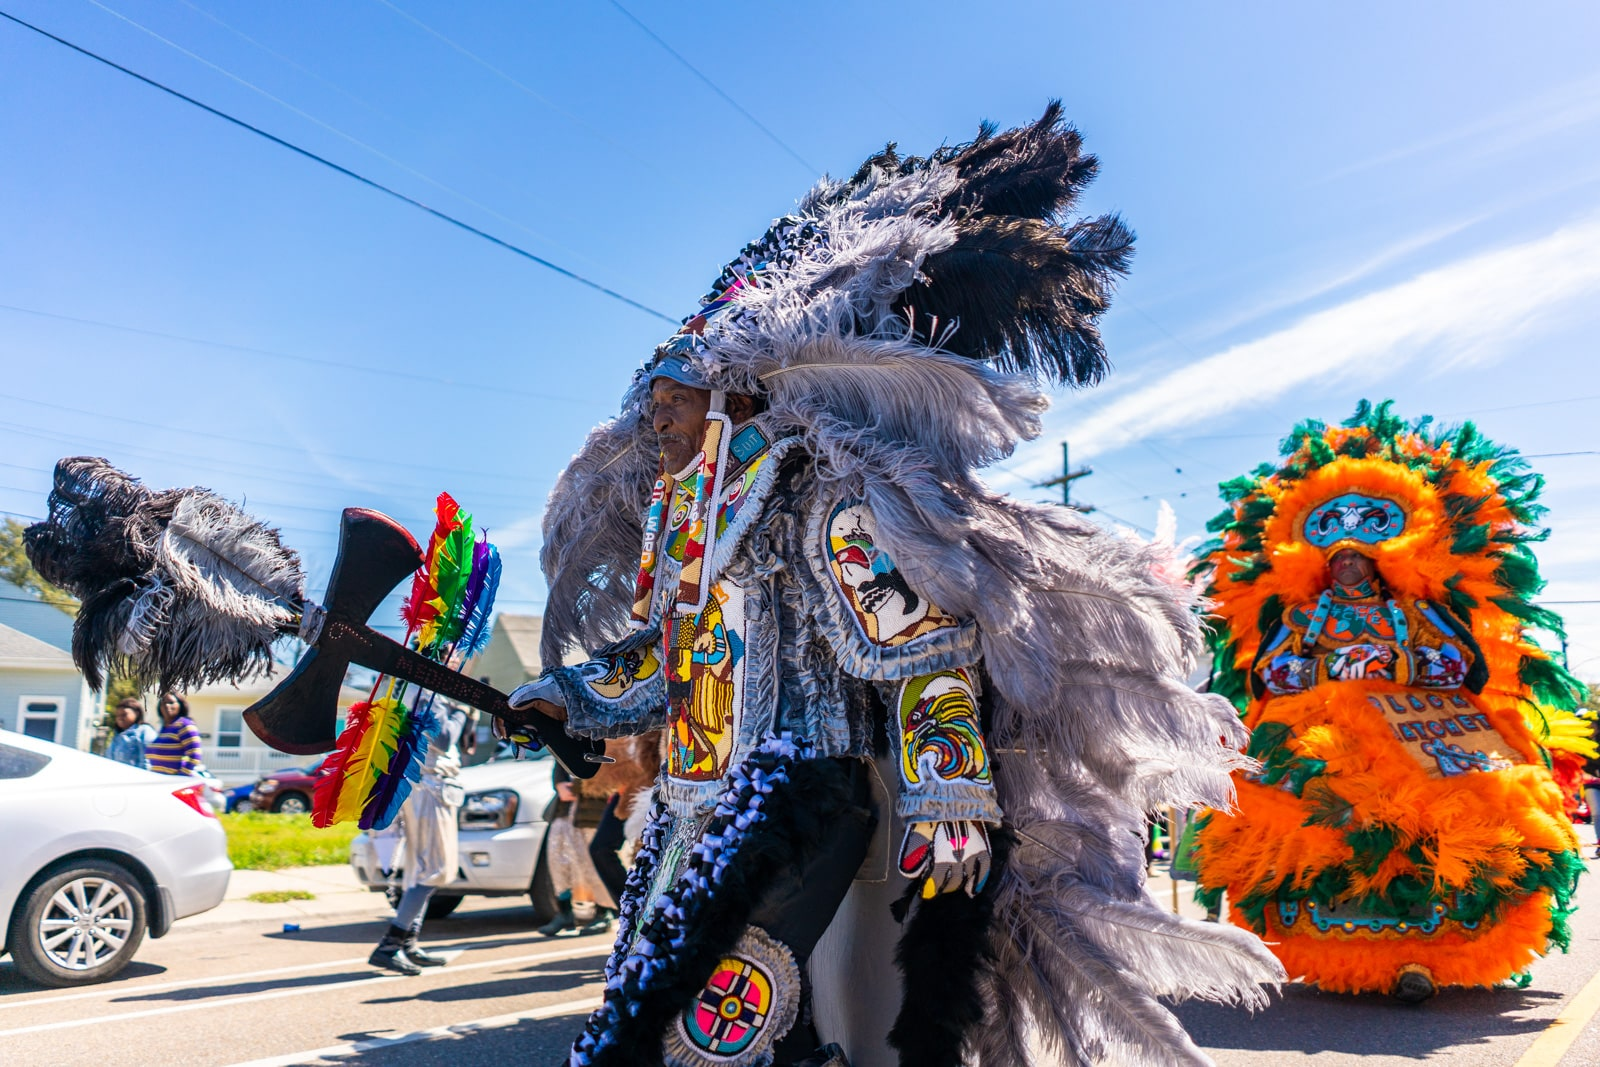 Mardi Gras Indian walking through the streets of New Orleans